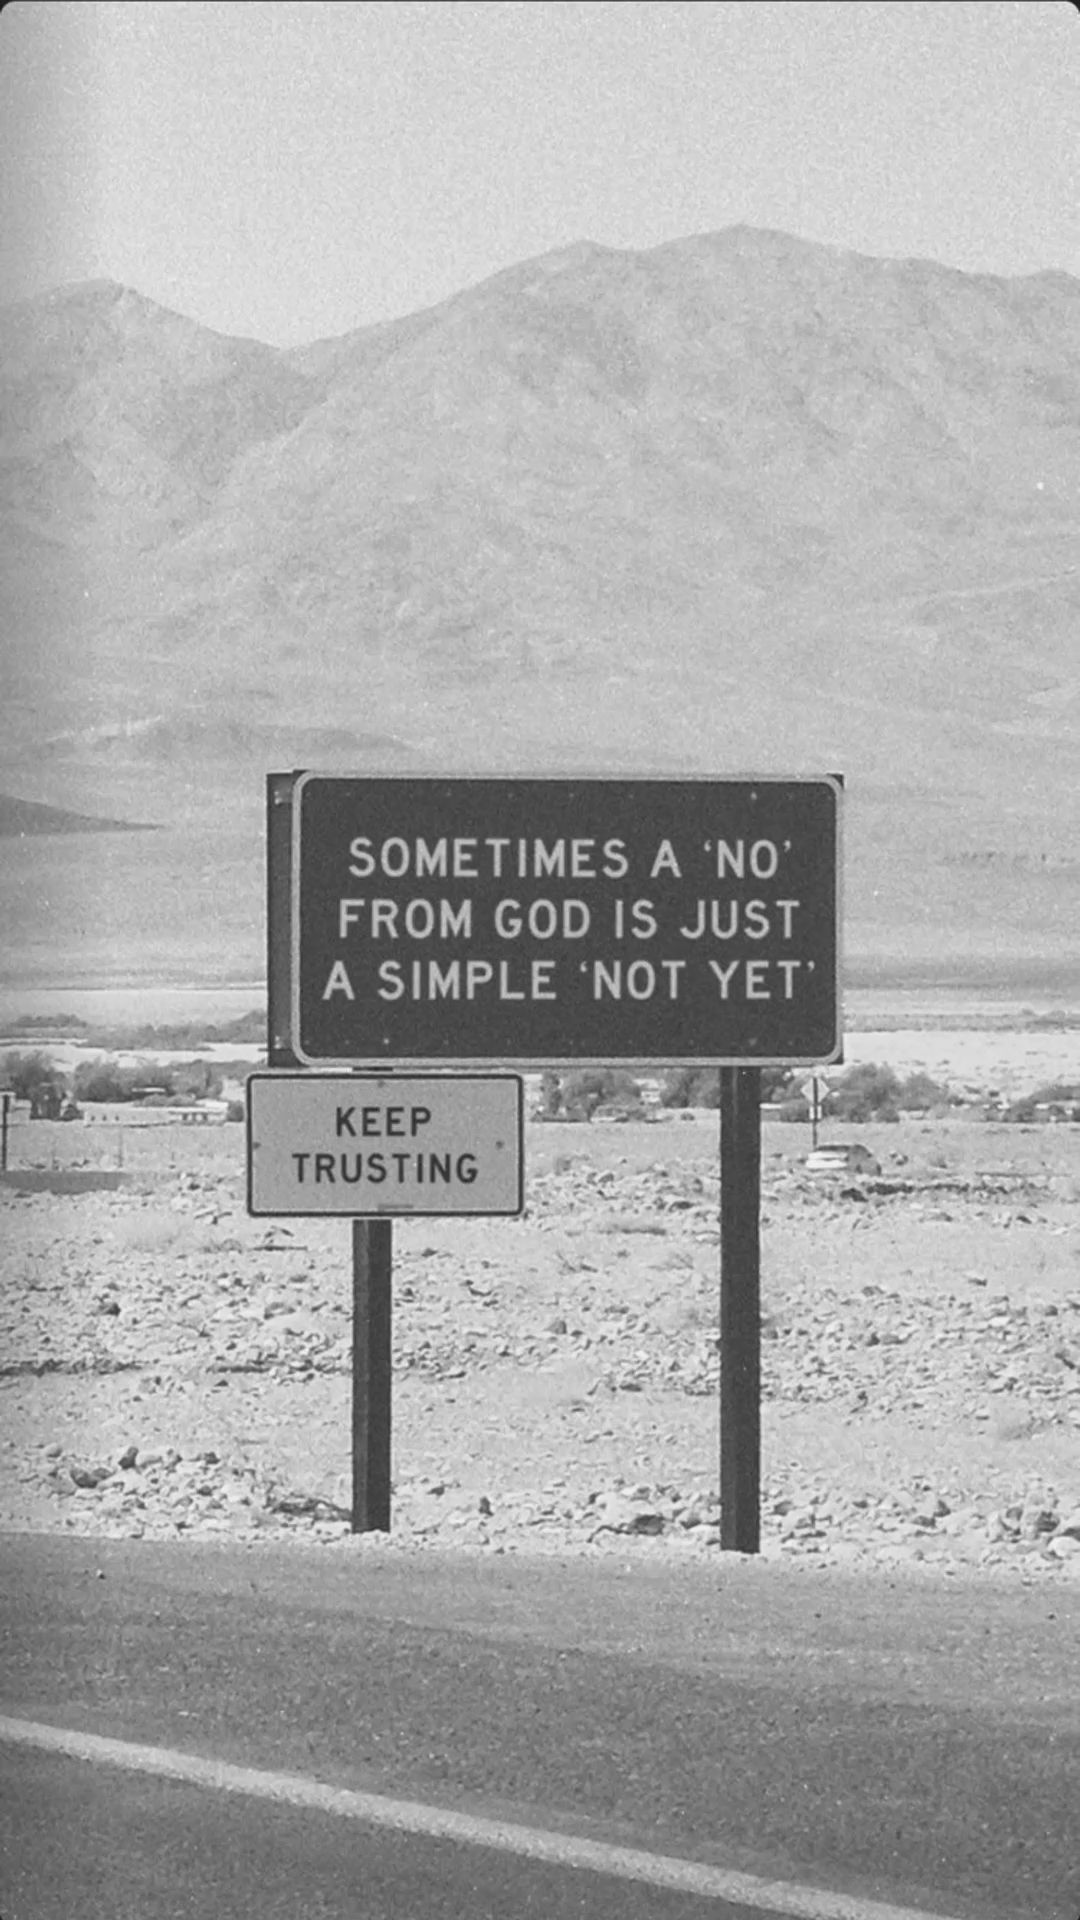 Christian Inspiration in Black and White